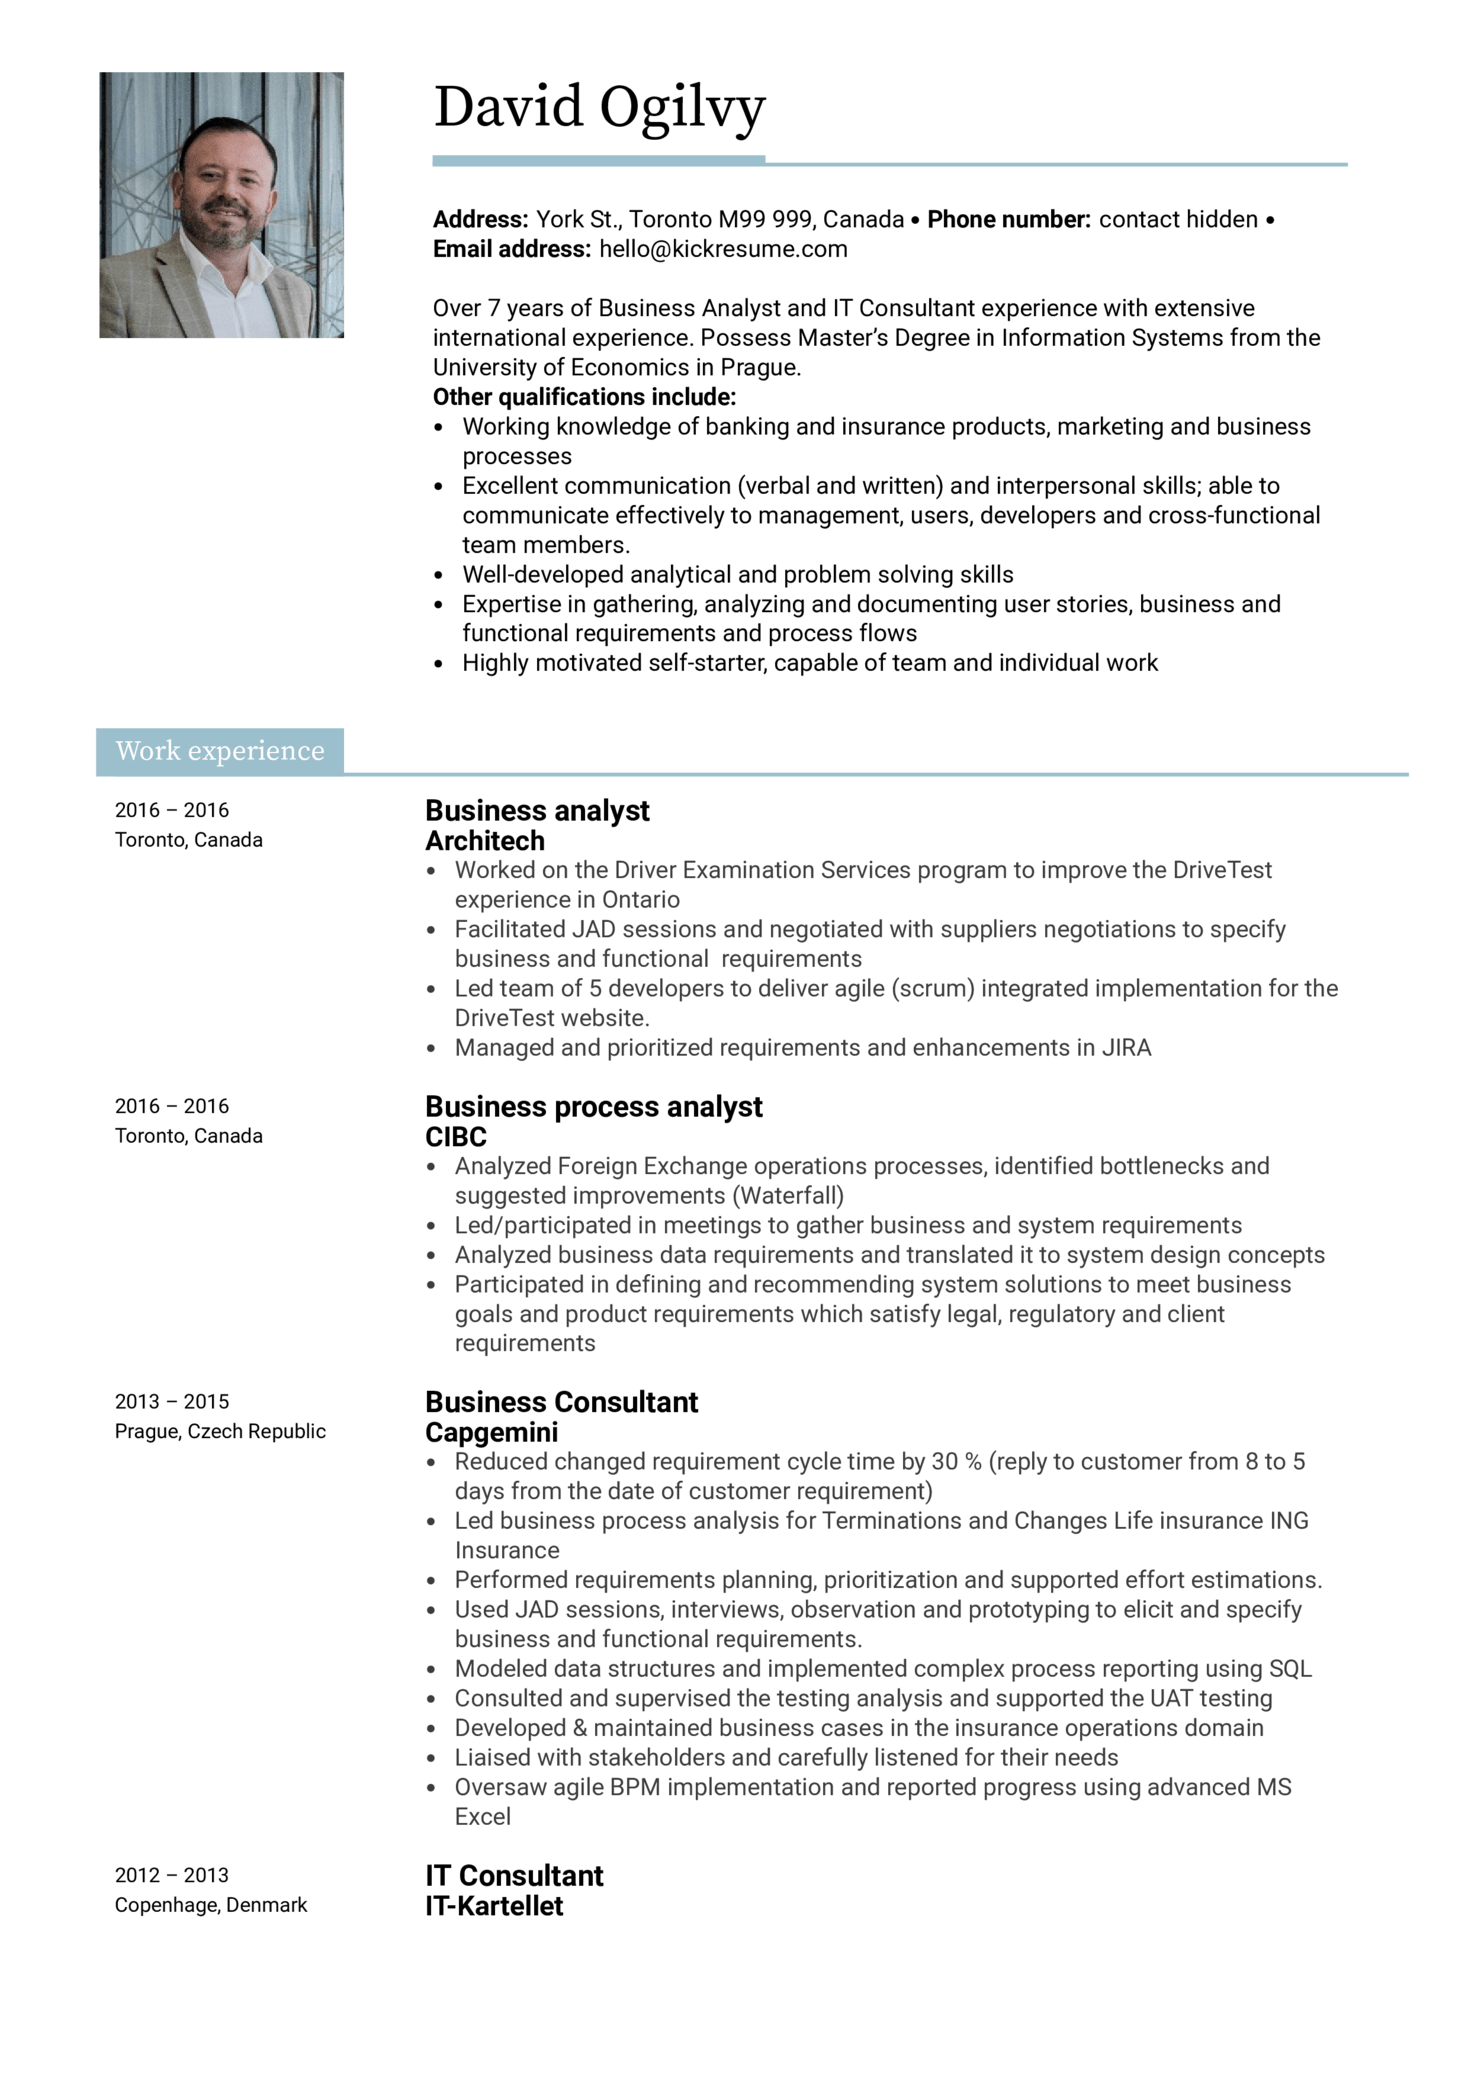 Scotiabank Business Analyst Resume Sample (Part 1)